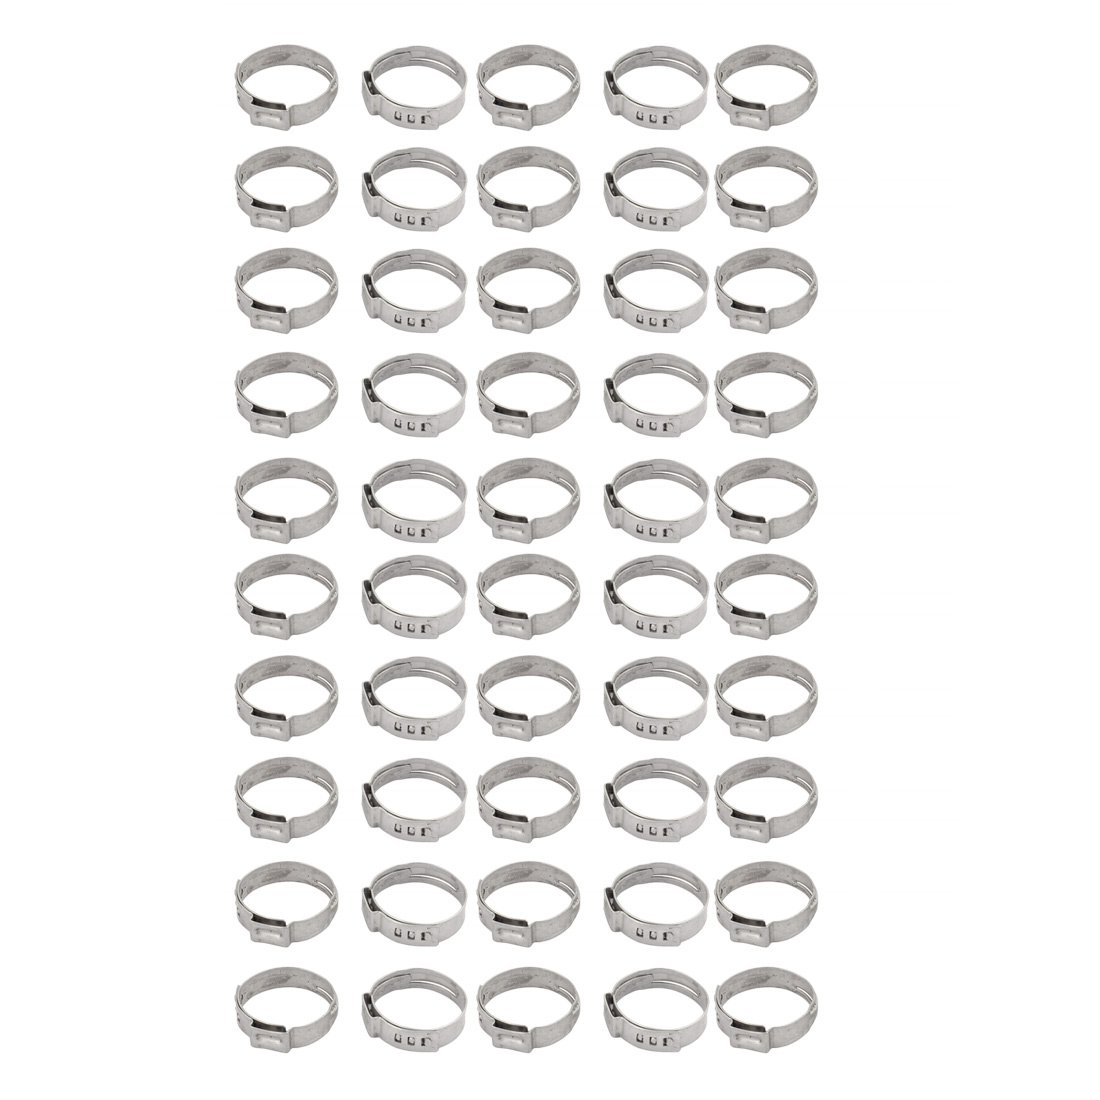 uxcell 20.9mm-24.1mm 304 Stainless Steel Adjustable Tube Hose Clamps Silver Tone 50pcs